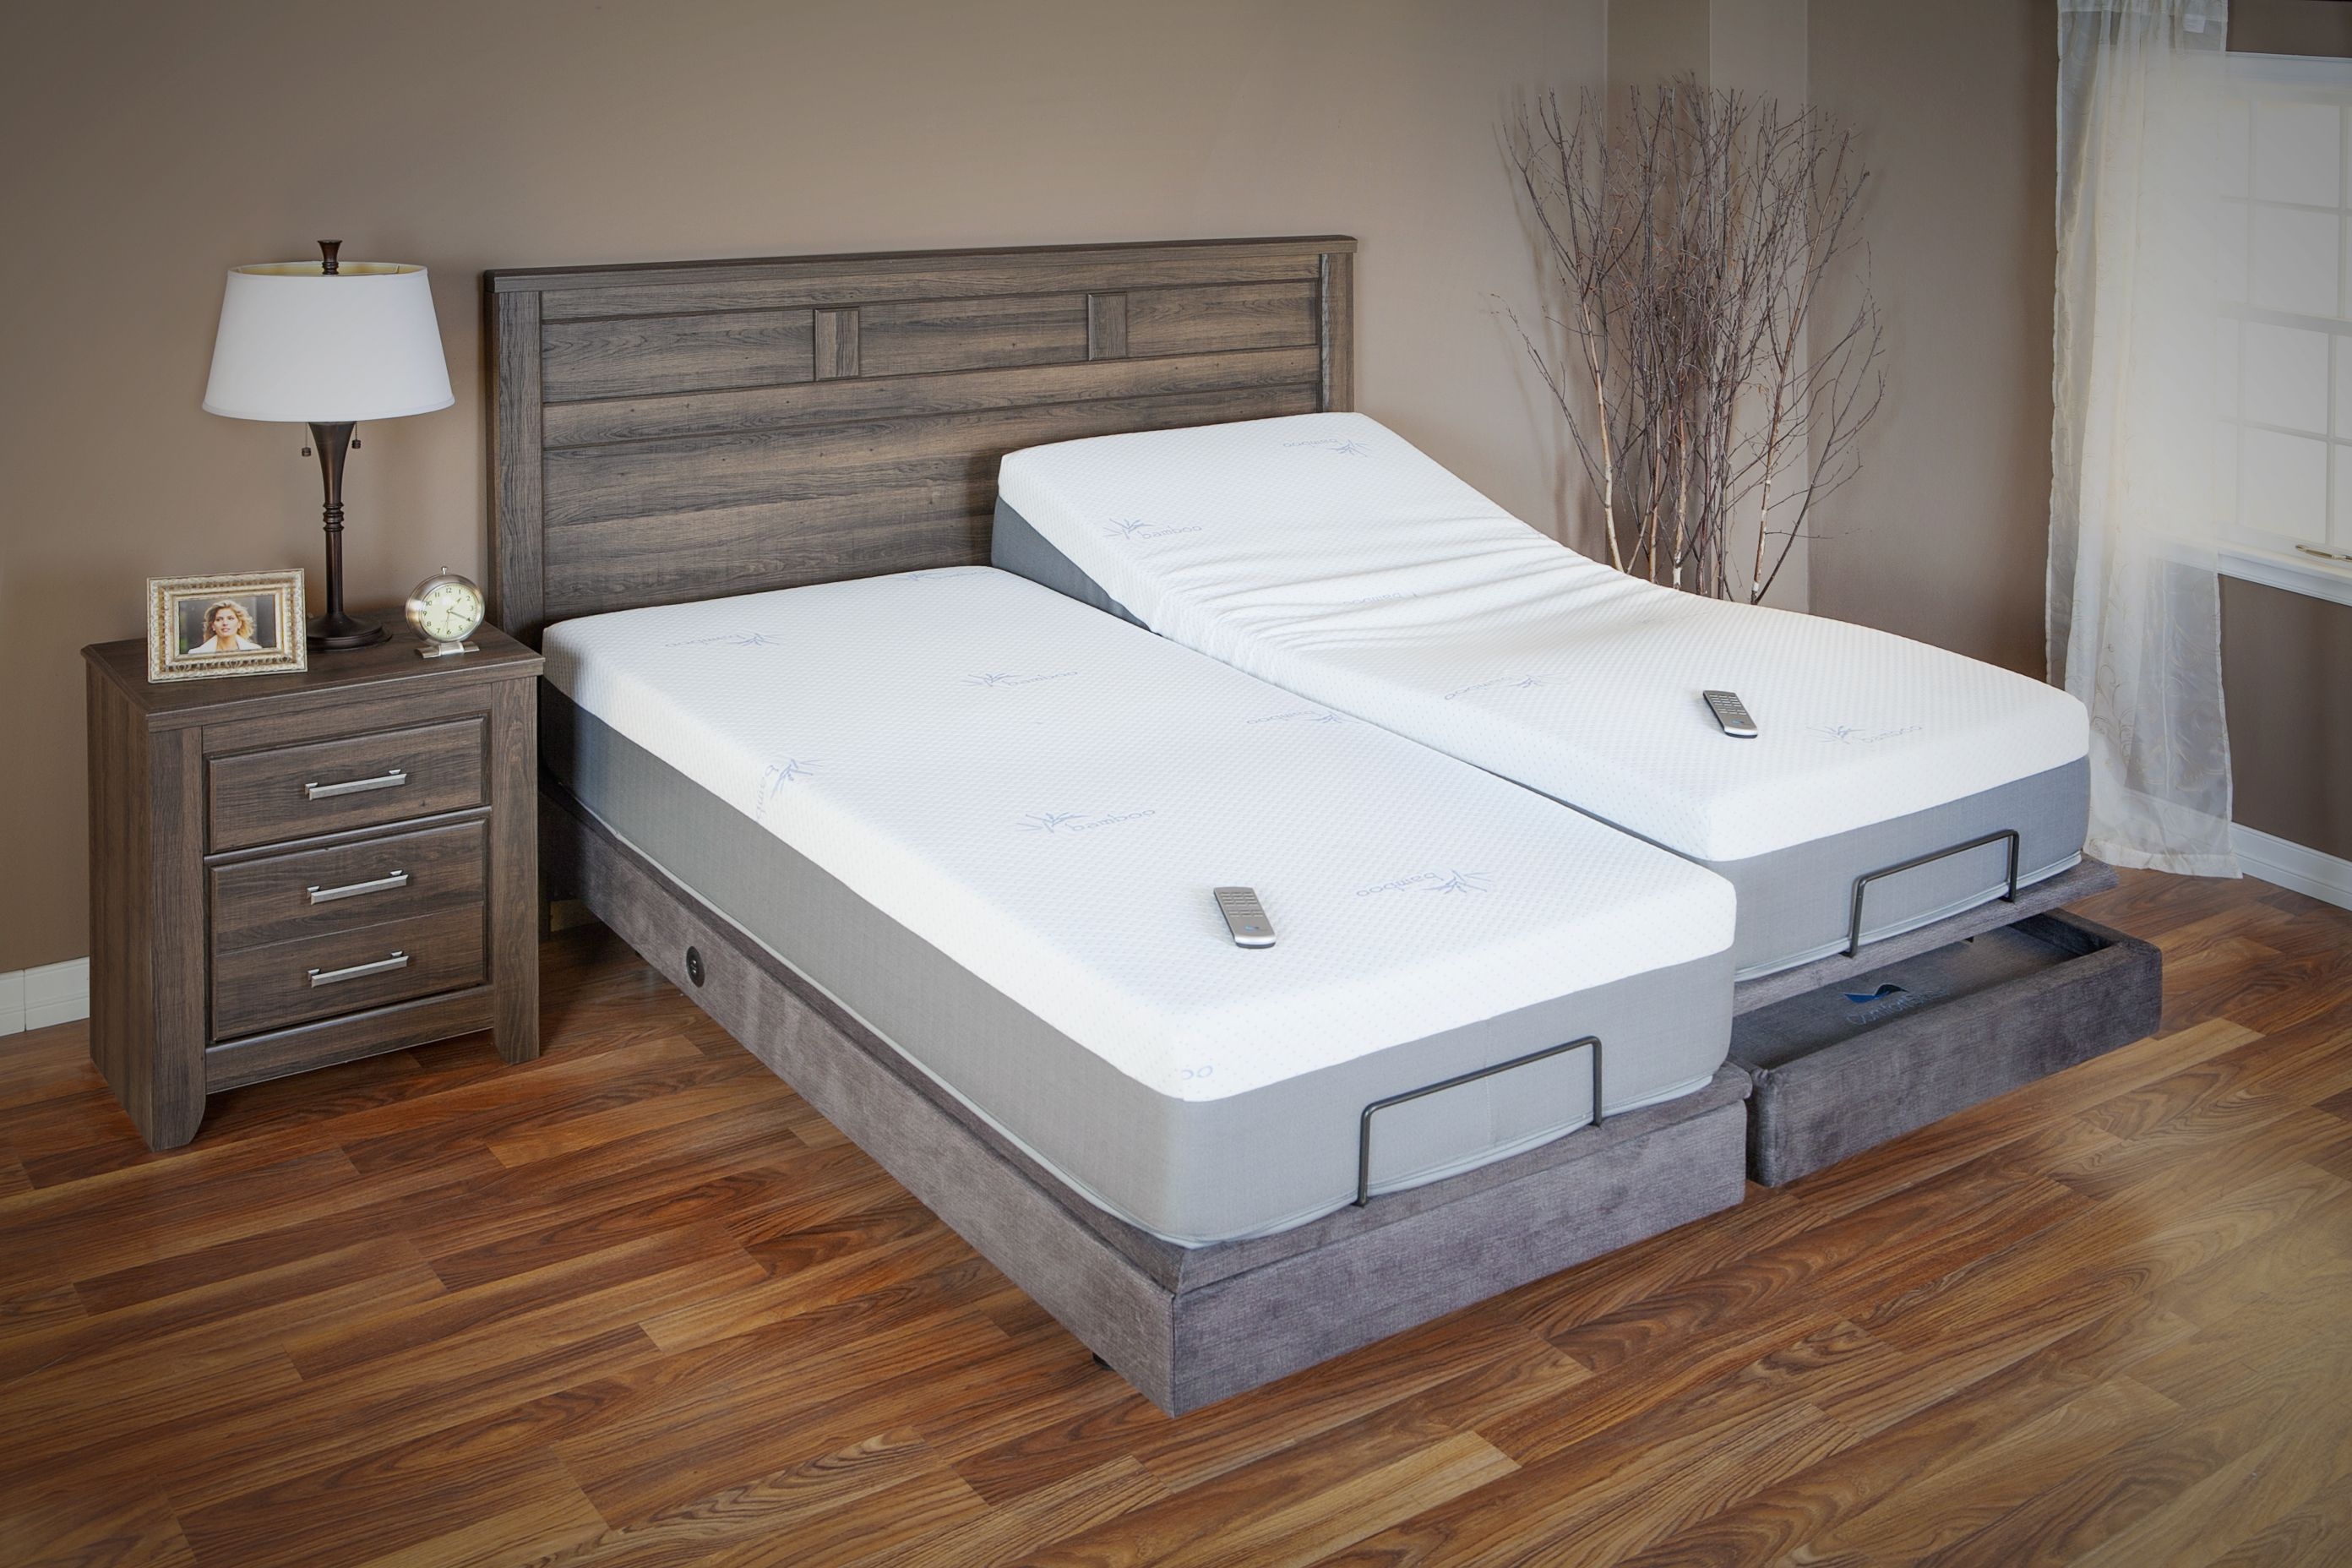 Spring Mattress And King Size Mattress Online At Discounted Price